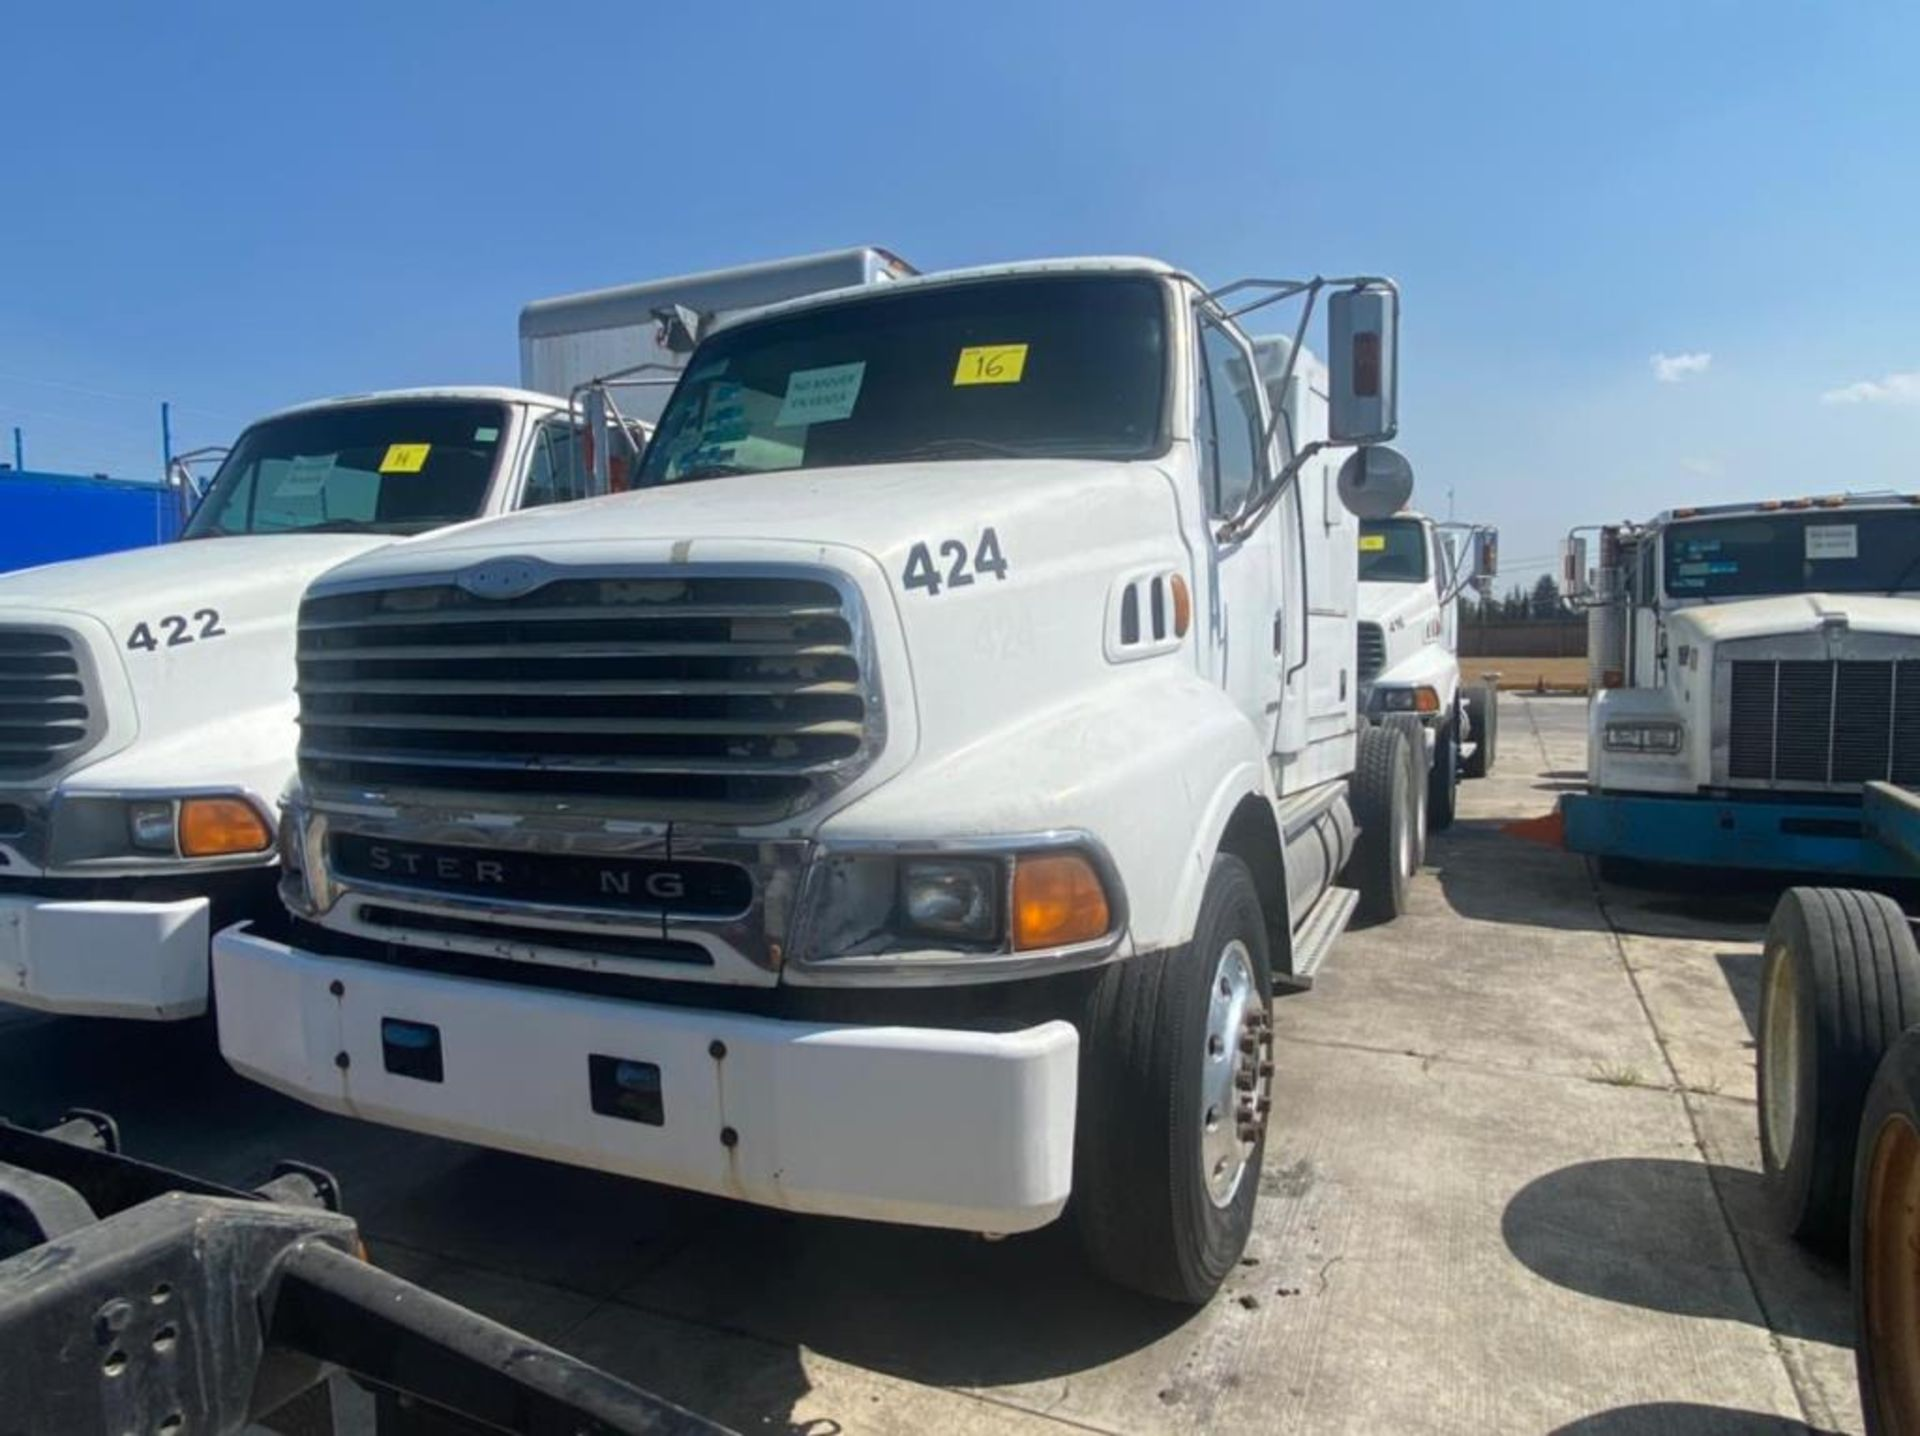 Tractocamión Marca STERLING, LT9500 Chassis, Modelo 2001 - Image 3 of 25